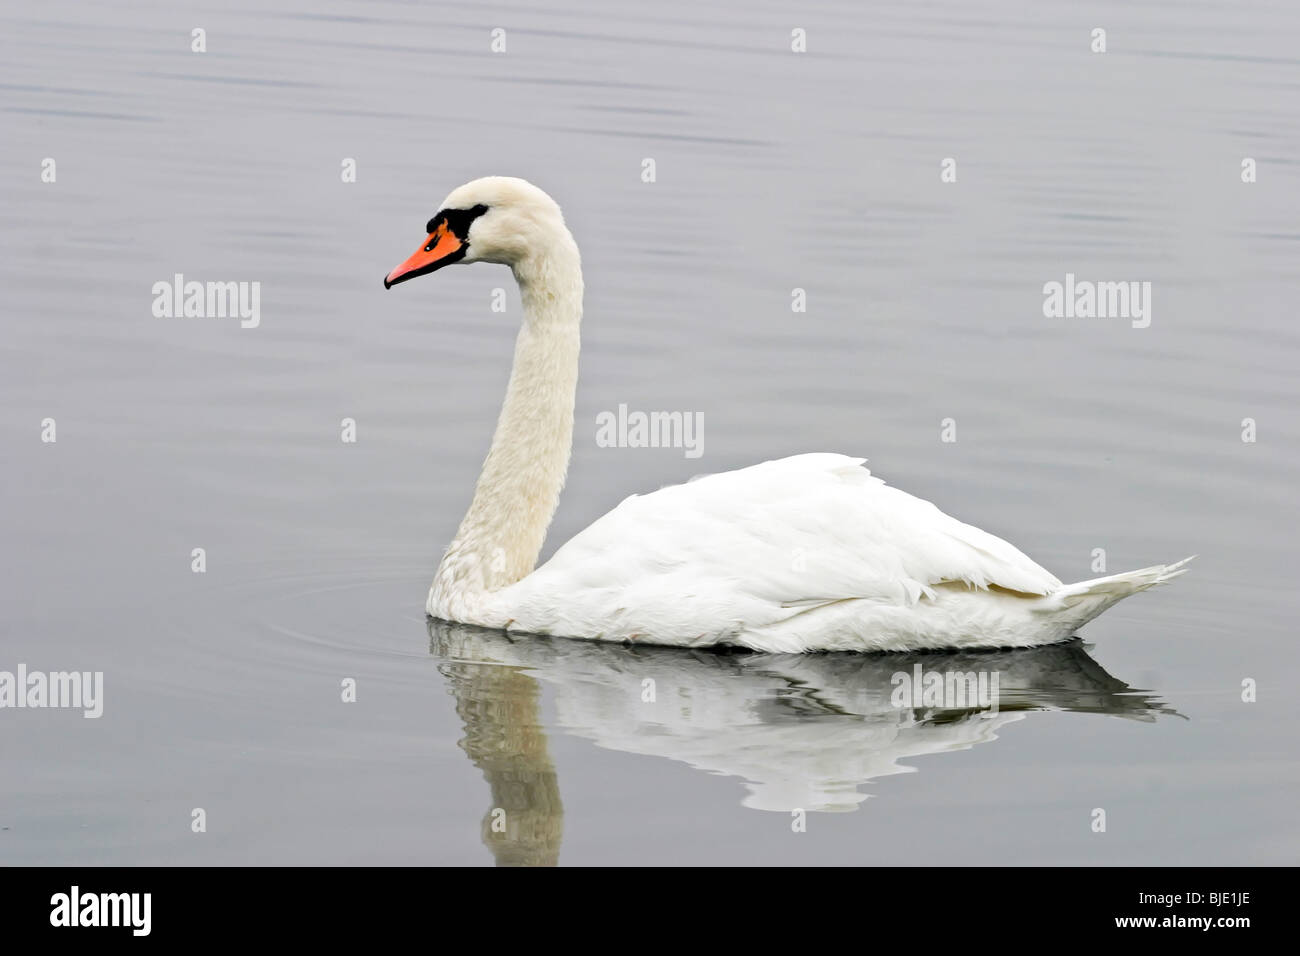 Swan in a lake - Stock Image